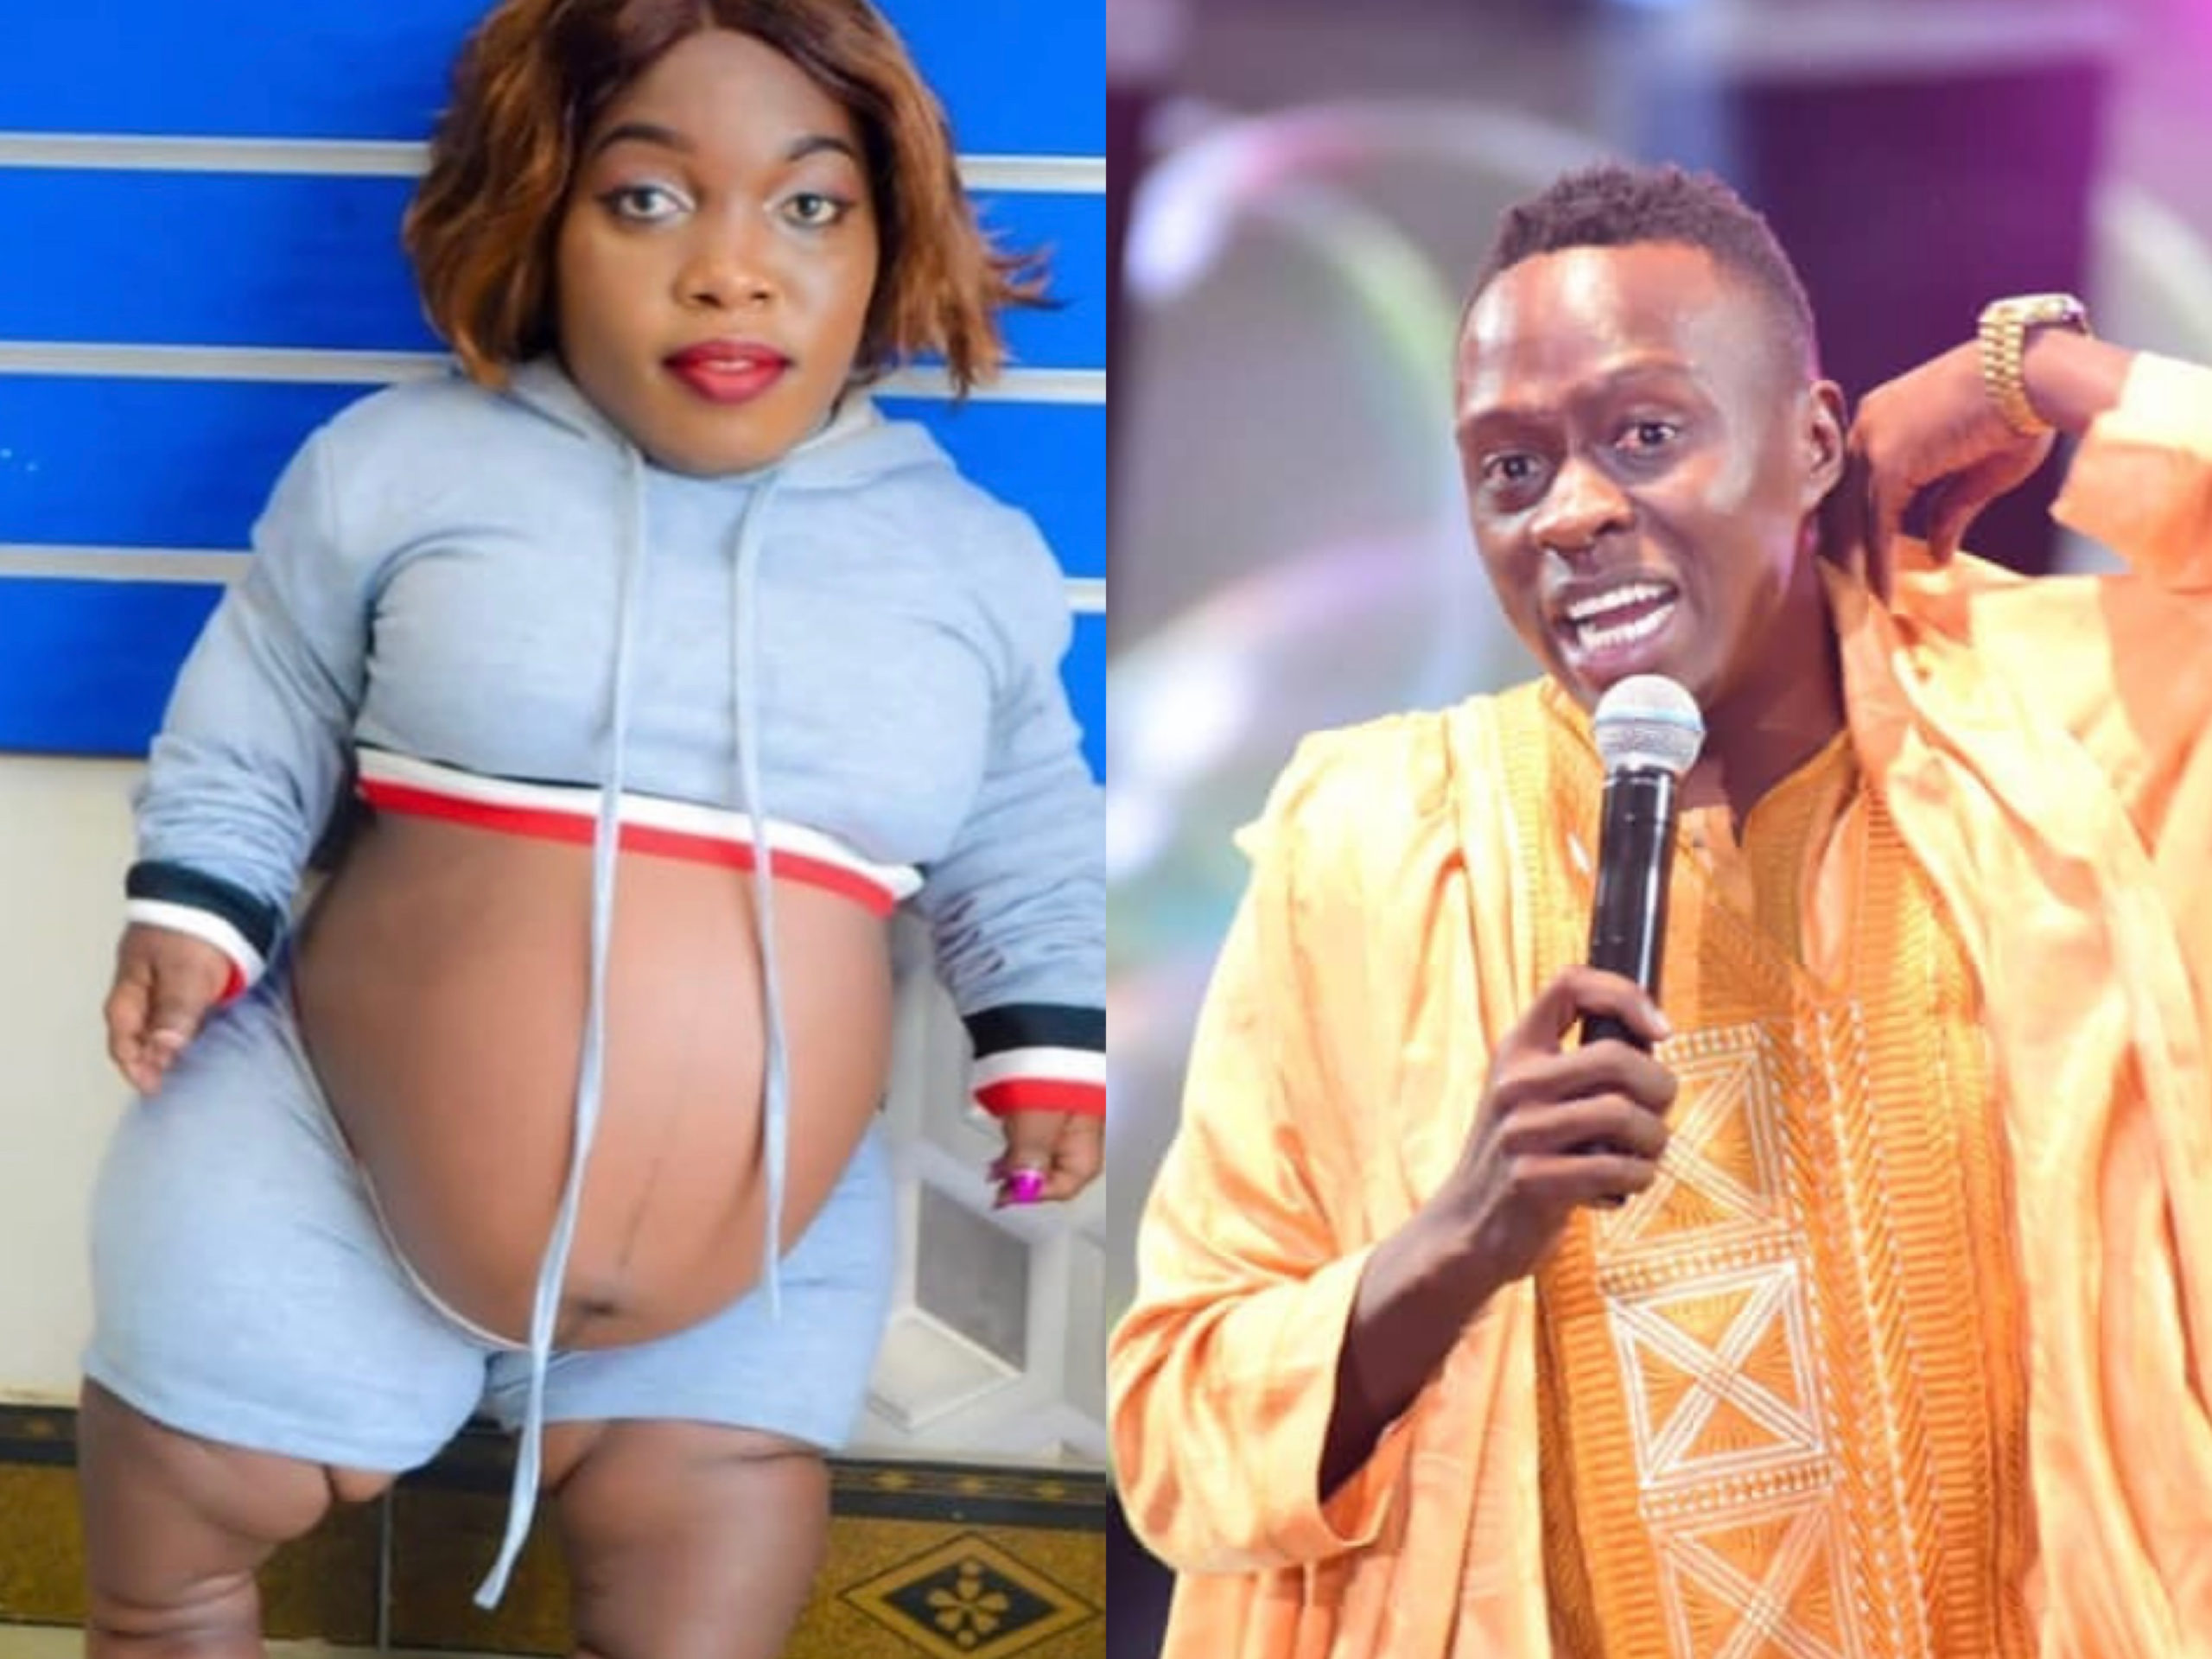 """Let it burn!"" Comedian Obinna unapologetically tells off fans criticizing him for making fun on Actress Tausi"